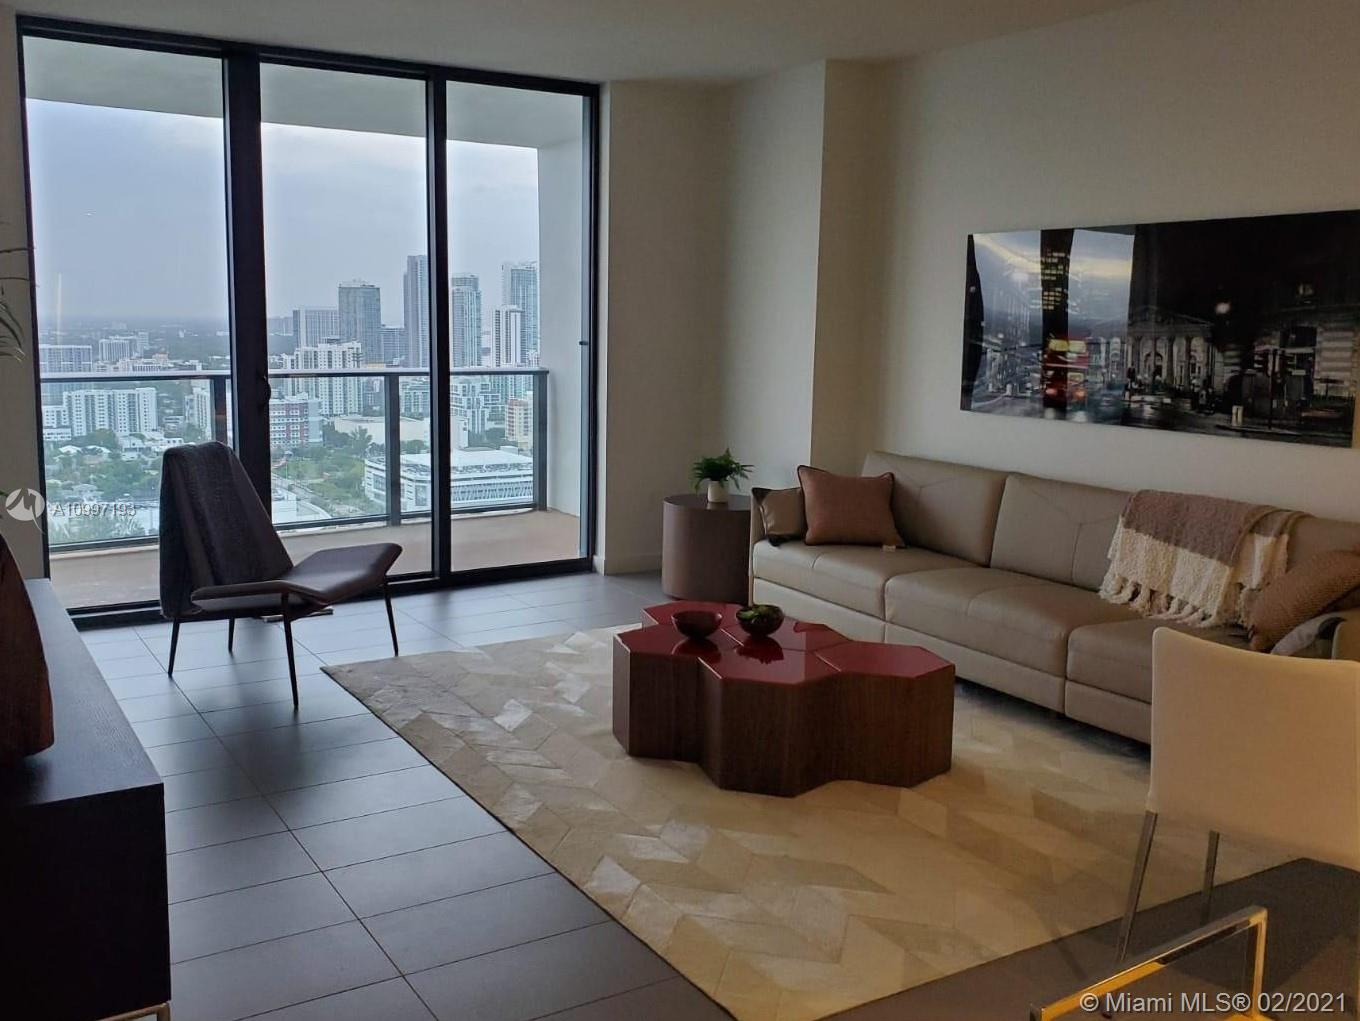 Canvas #3419 - 1600 NE 1st Ave #3419, Miami, FL 33132